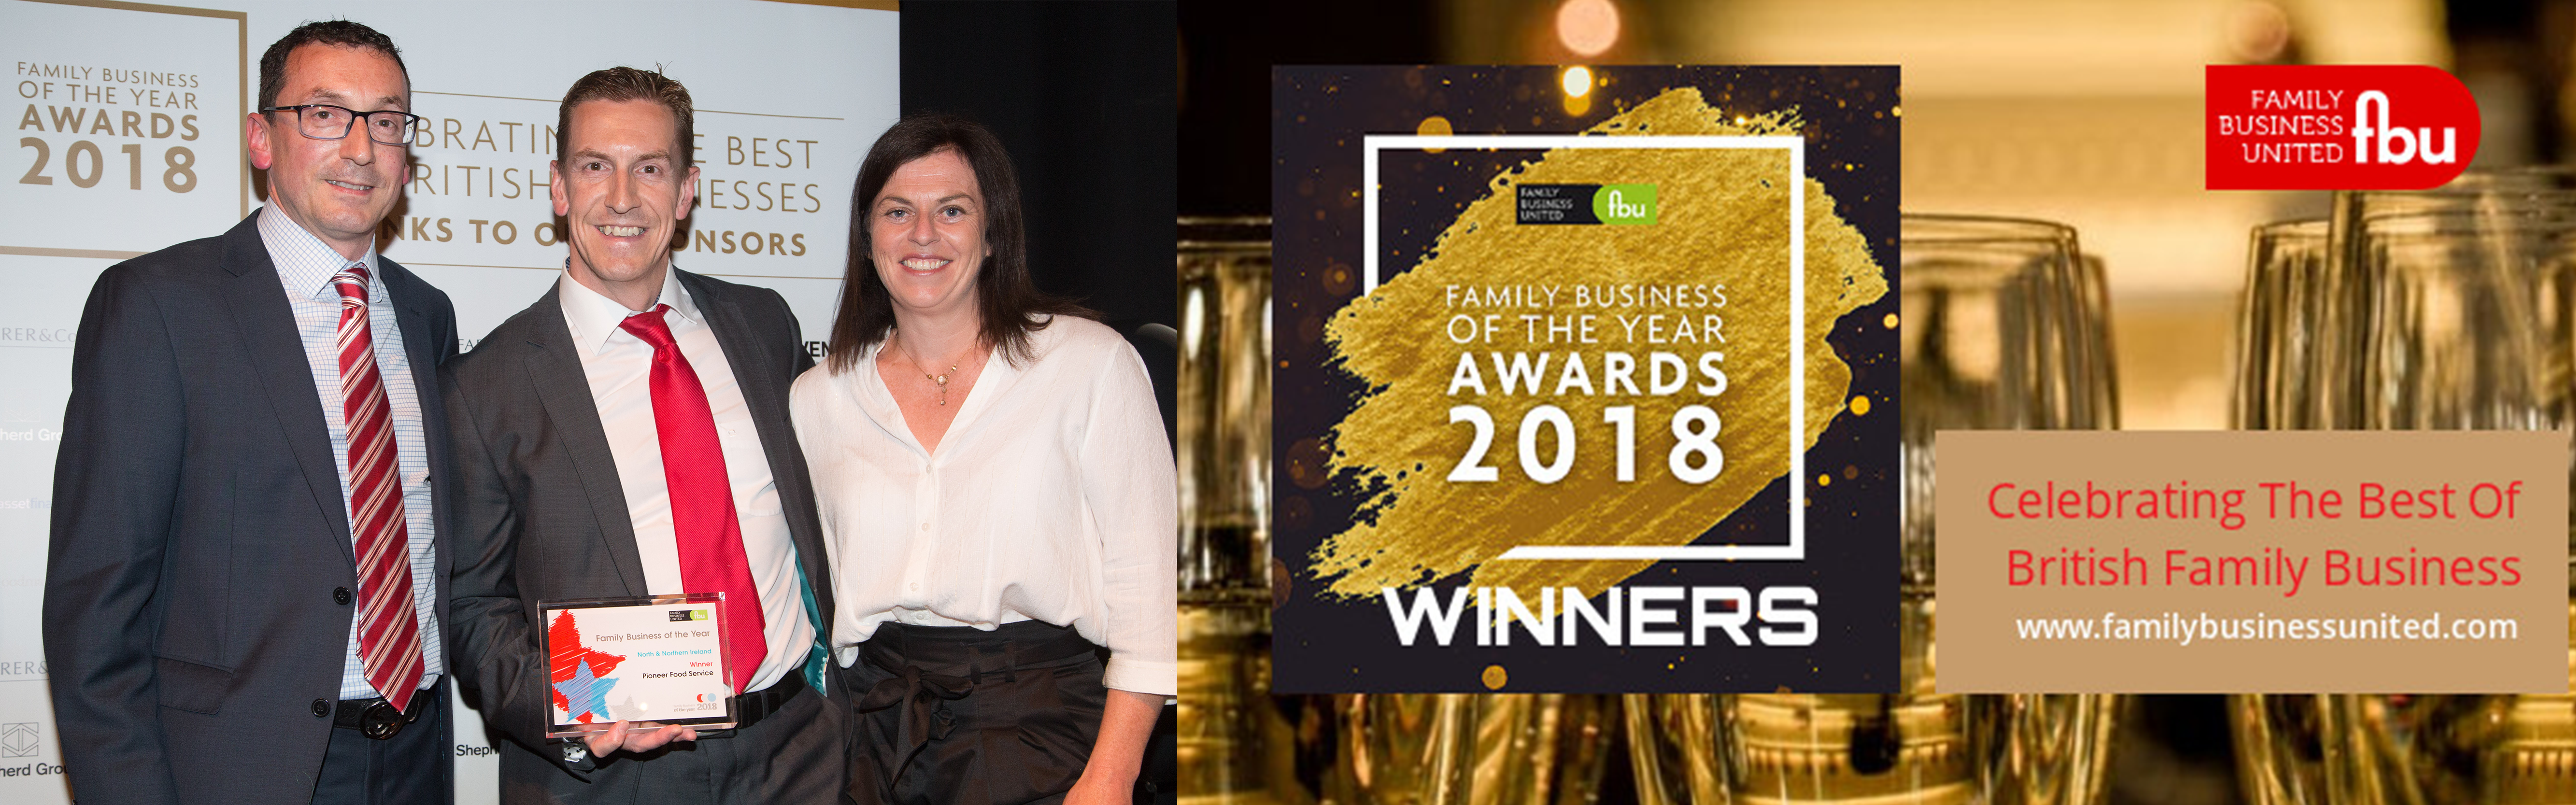 Pioneer Foodservice | Family Business of the Year 2018 | award winners